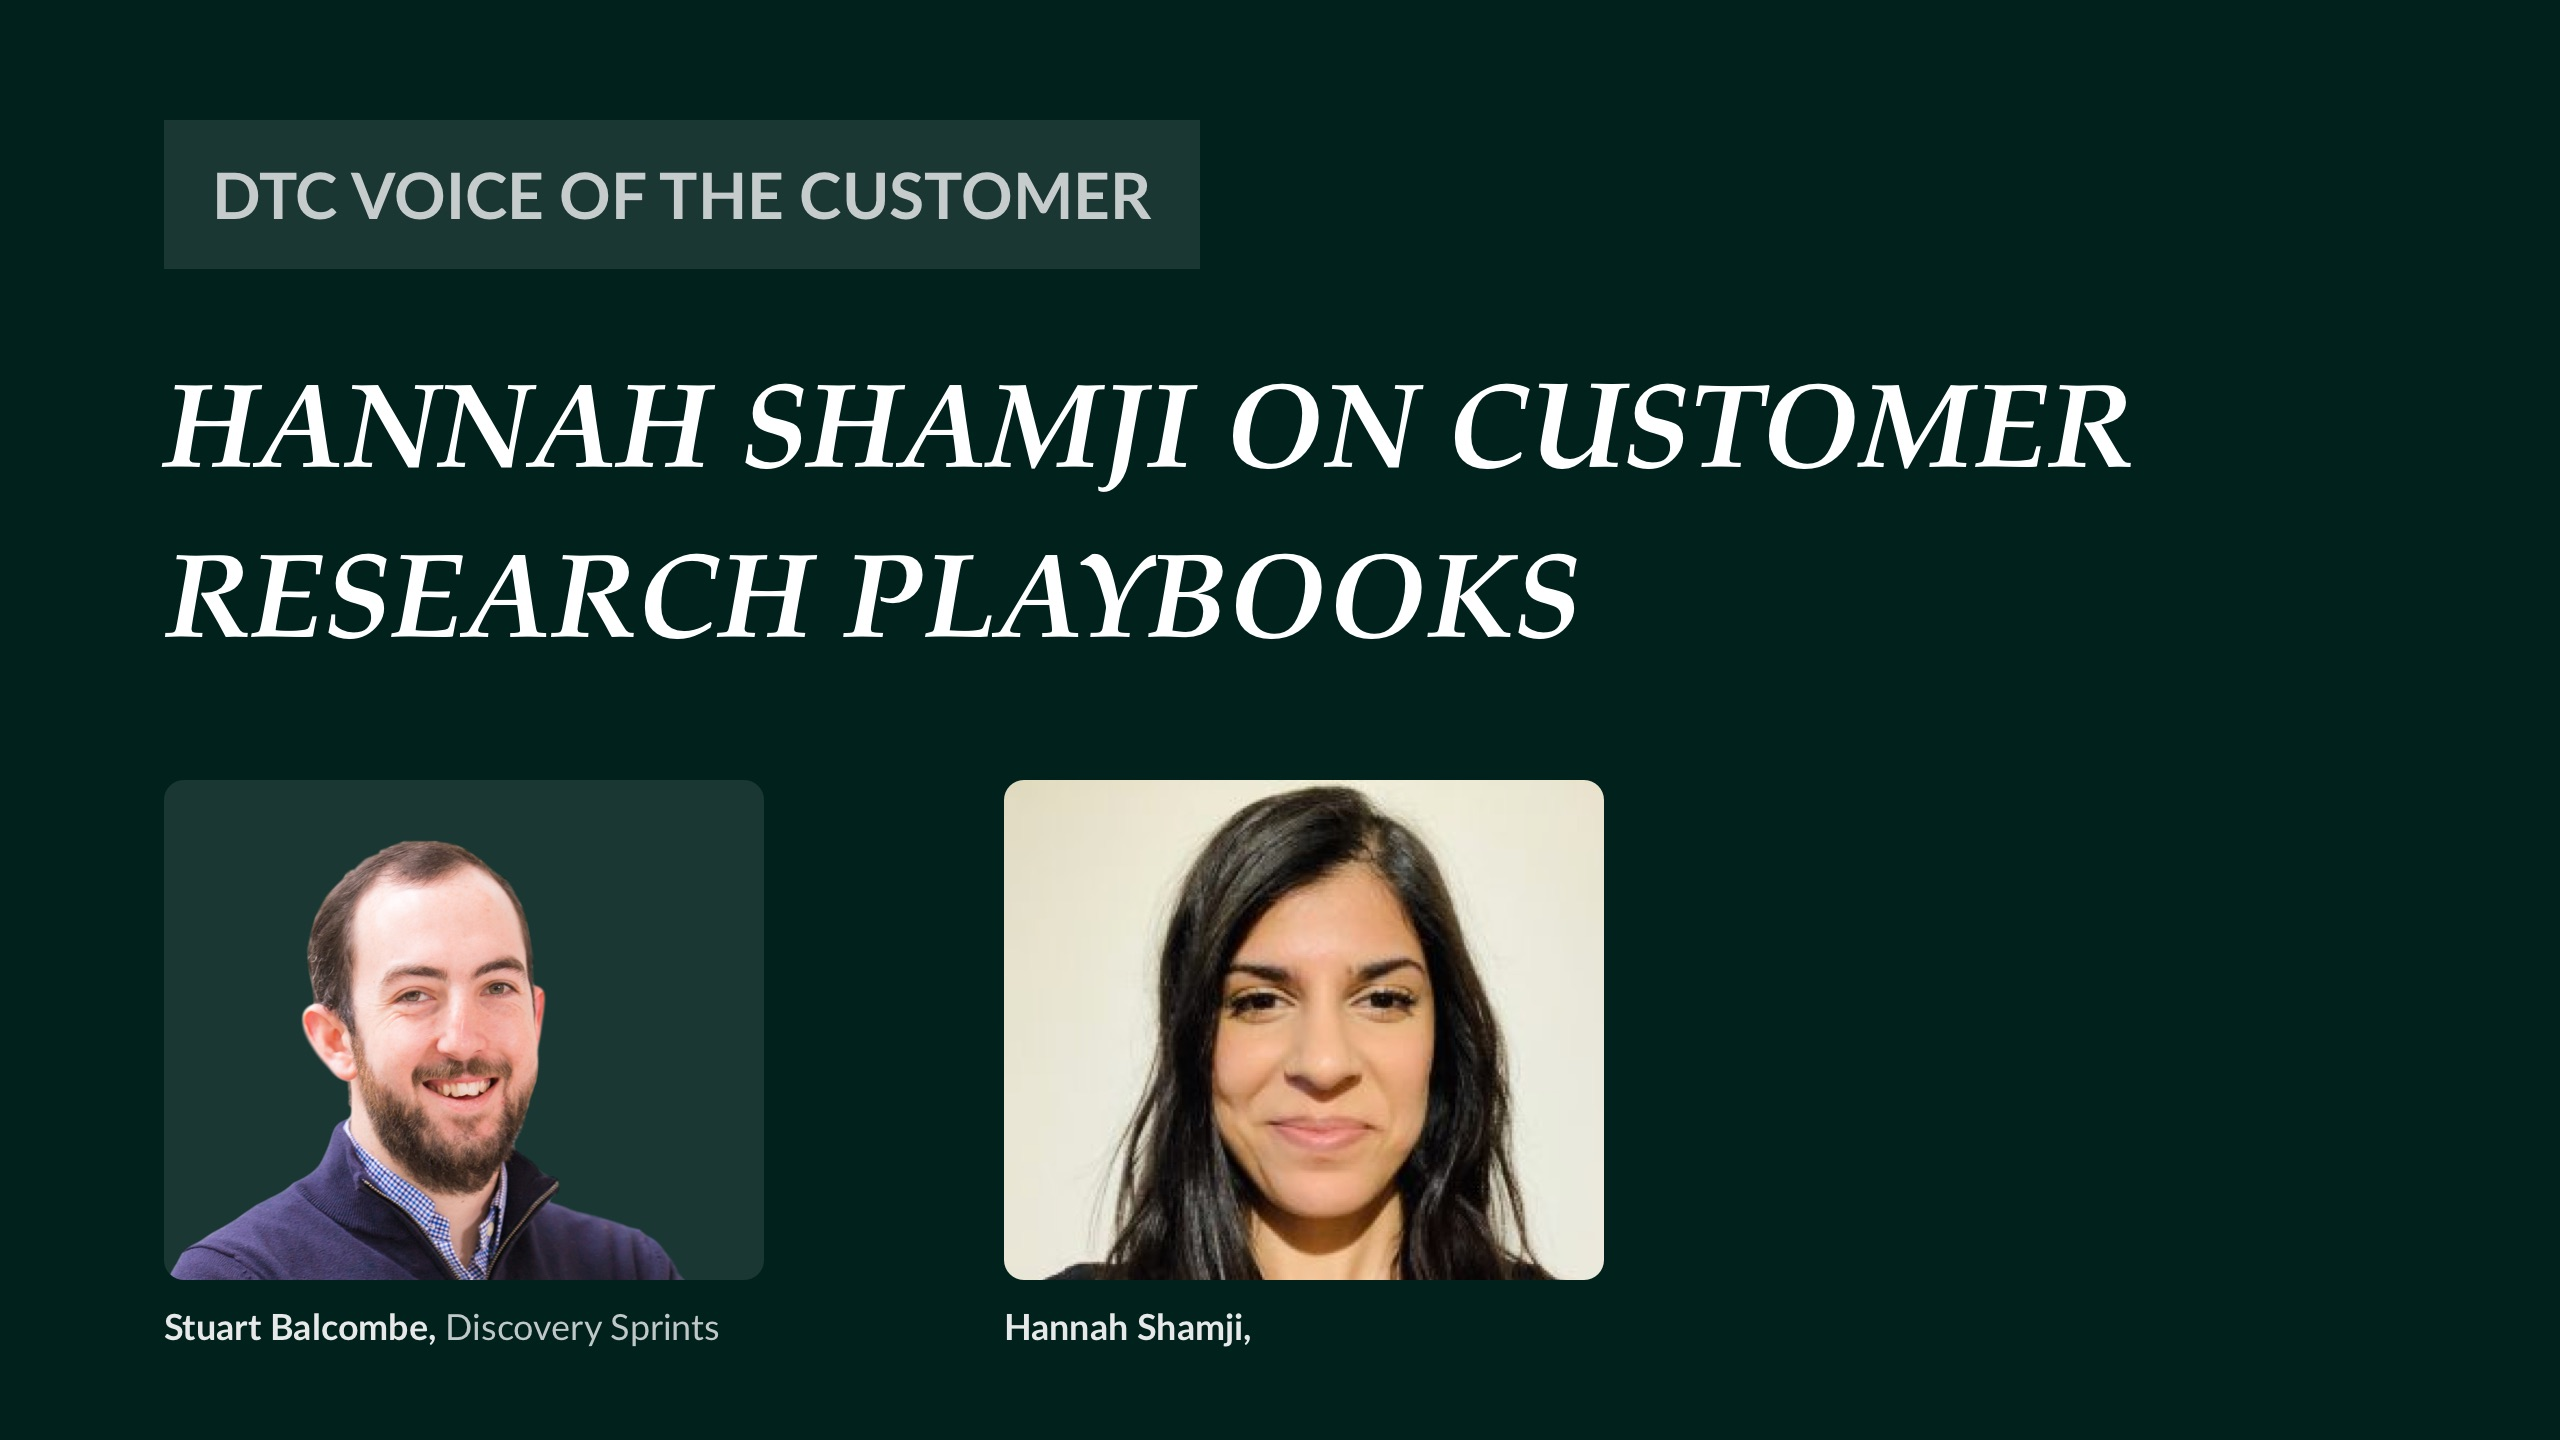 Hannah Shamji on customer research playbooks